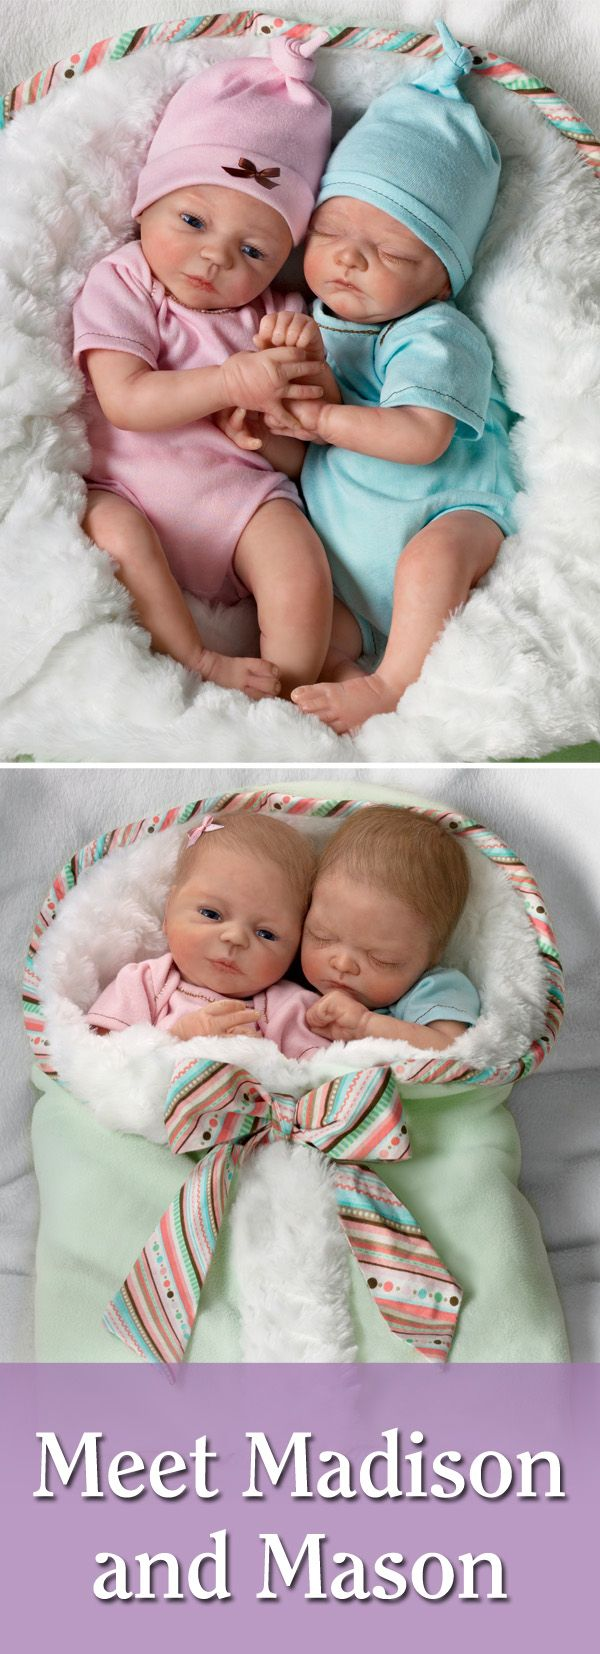 Meet Madison and Mason, twin baby dolls by Master Doll Artist Donna Lee!